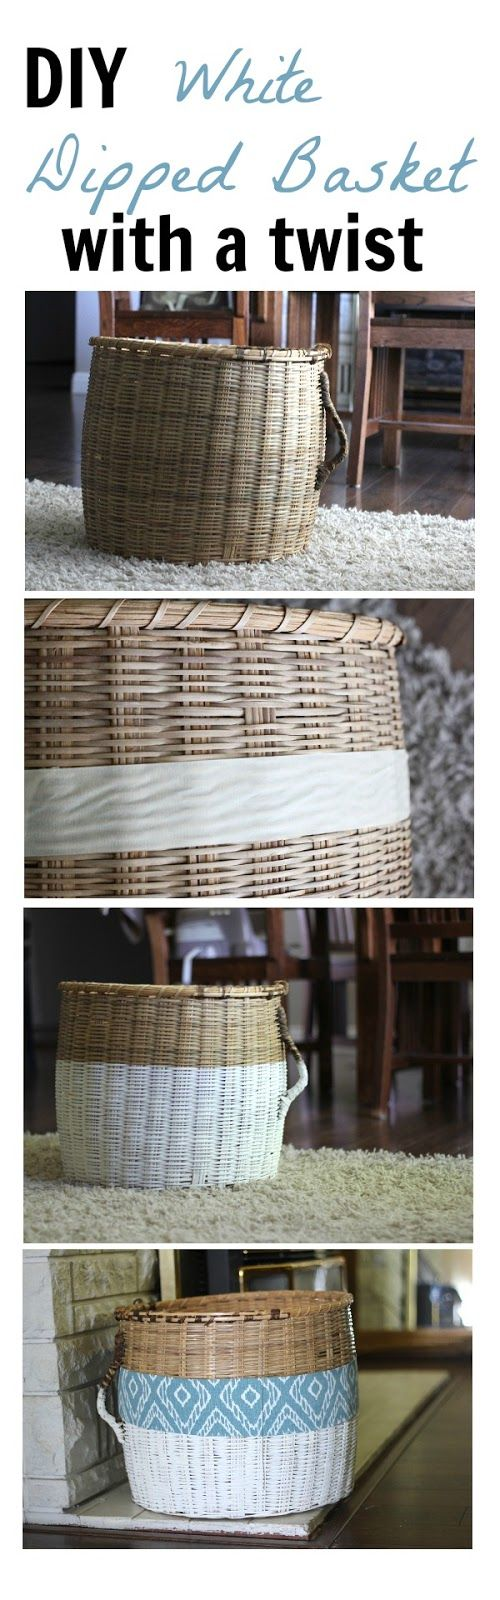 This white dipped basket has been a great addition for blanket storage in our living room.  I added a fun accent piece that is not only easy to make but can be changed throughout the year for different seasons or holidays!!